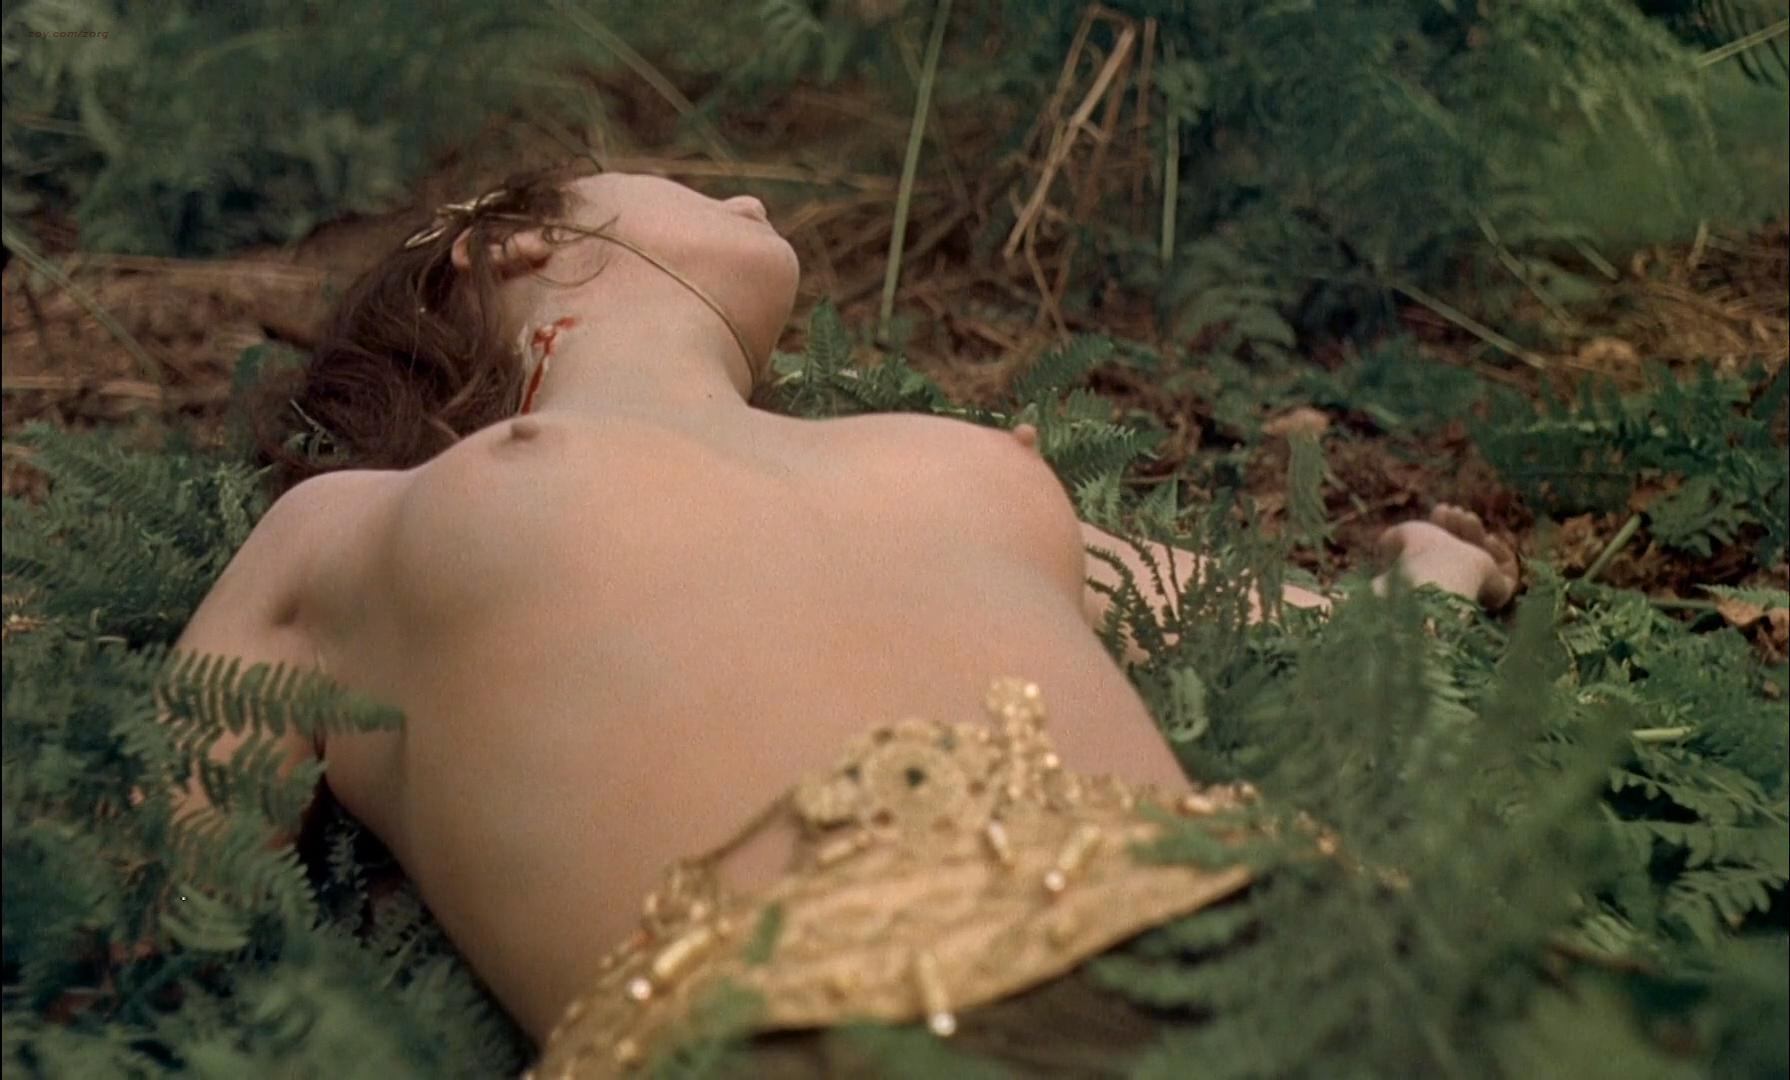 Ingrid Pitt nude, Andrea Lawrence nude - Countess Dracula (1971)